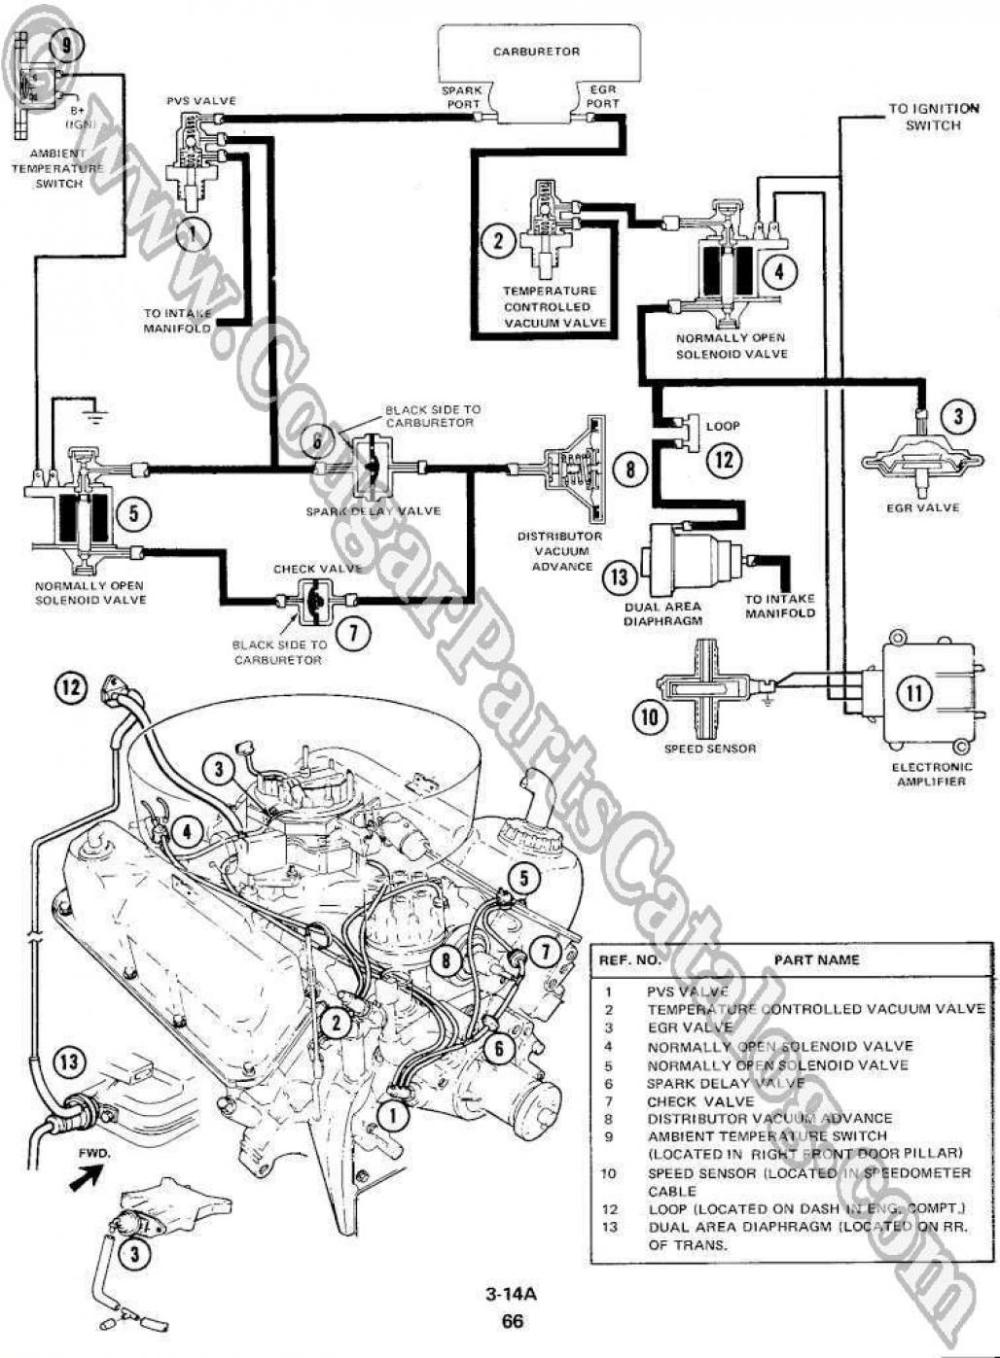 medium resolution of 1967 mustang engine diagram data wiring diagrams u2022 rh mikeadkinsguitar com ford 289 distributor wiring diagram